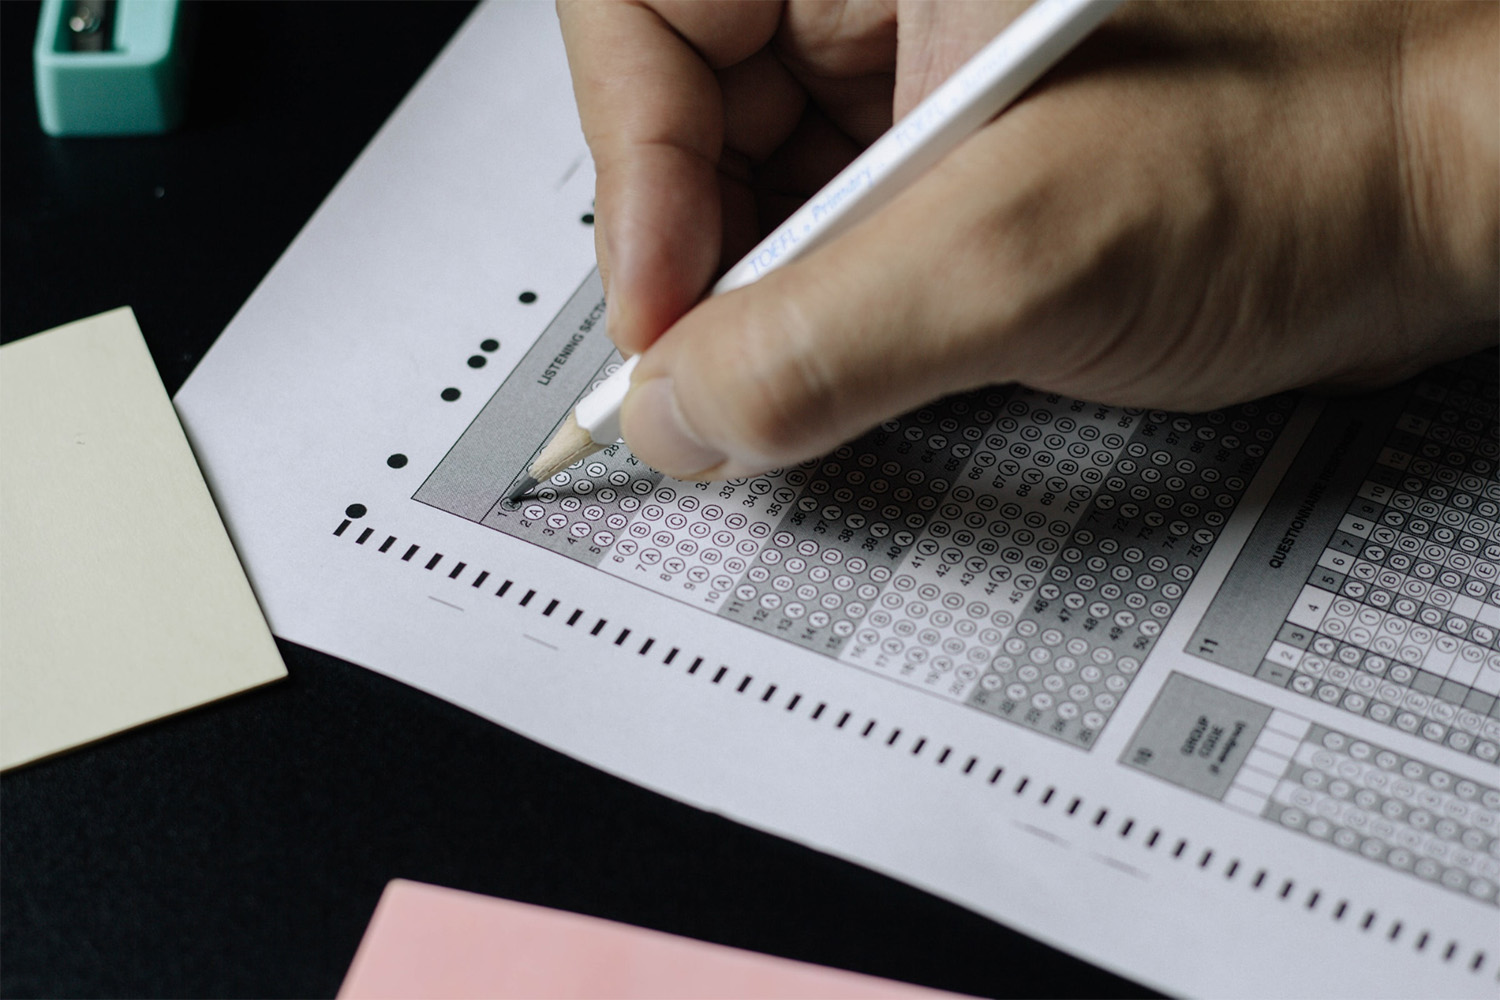 Student filling out a multiple choice exam